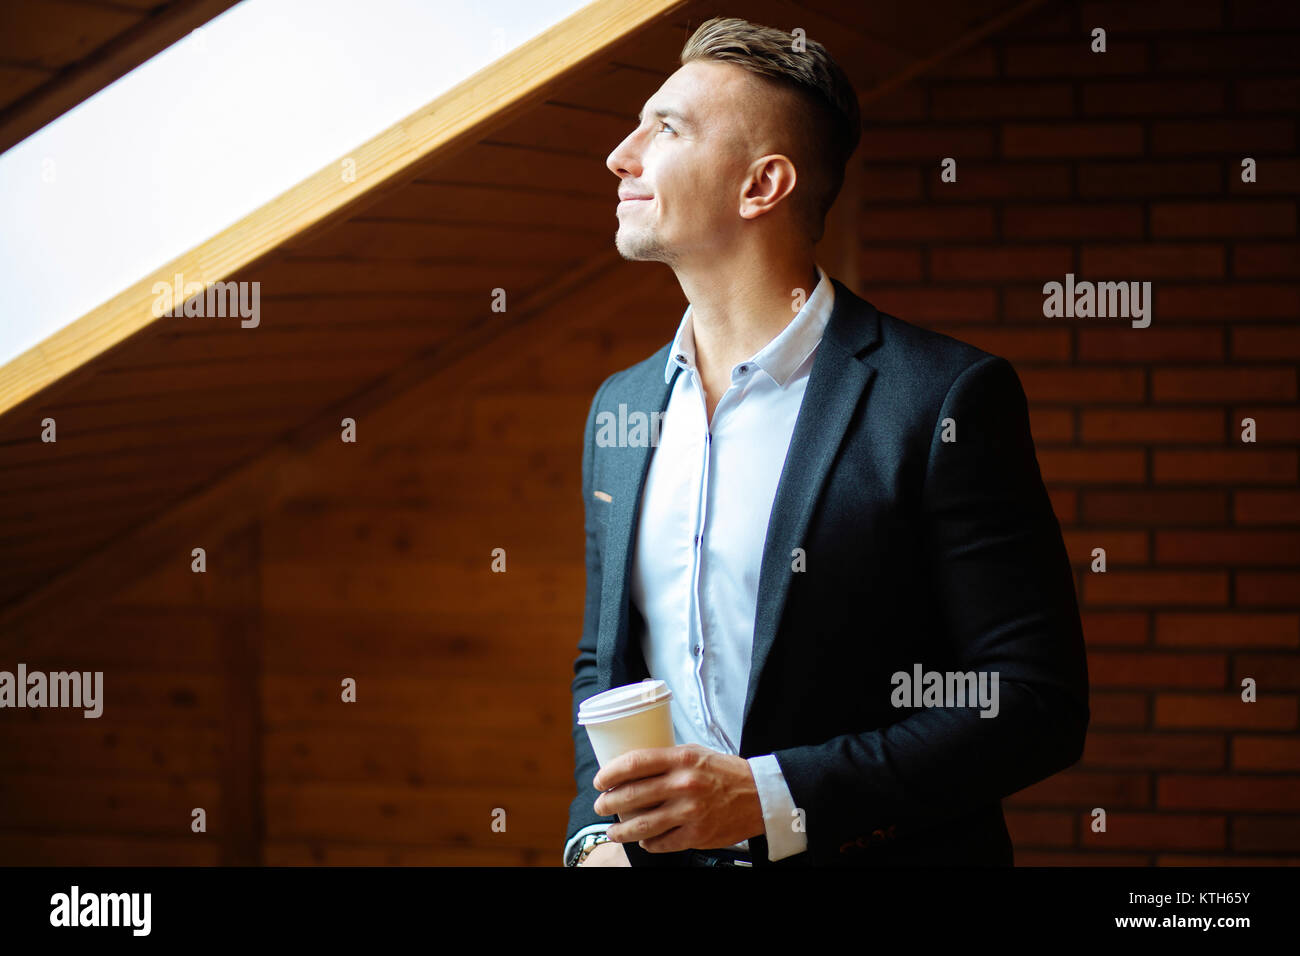 handsome businessman drinking coffee in home and looking away - Stock Image